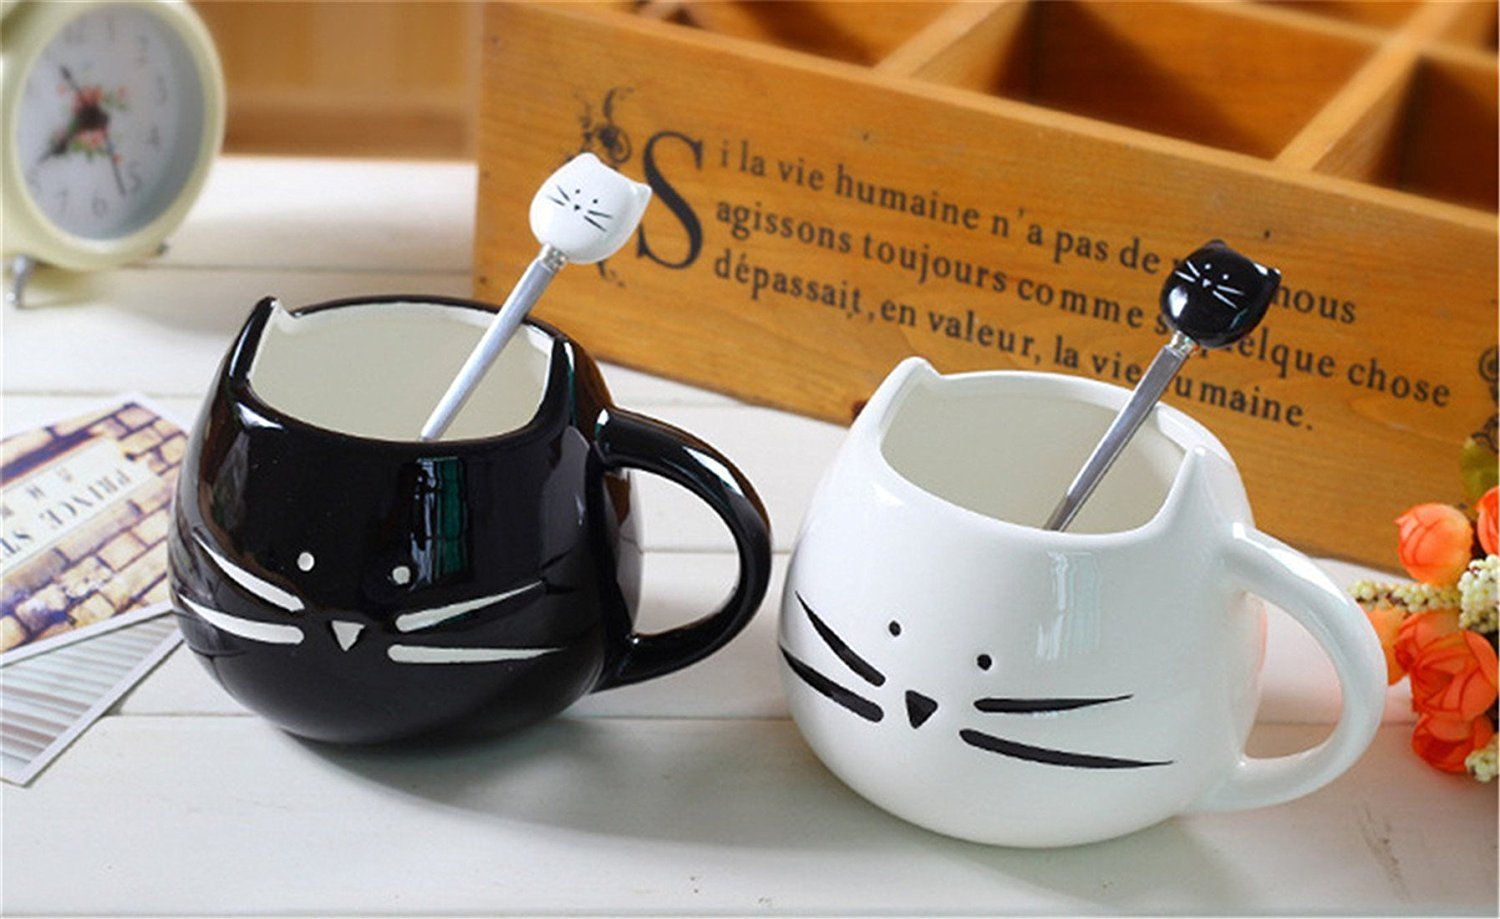 Kitty Cat Matching Male And Female Mugs Tea Coffee Milk Cup Gift Wedding Lover Hug Set Additional Details At The Pin Image Click It This